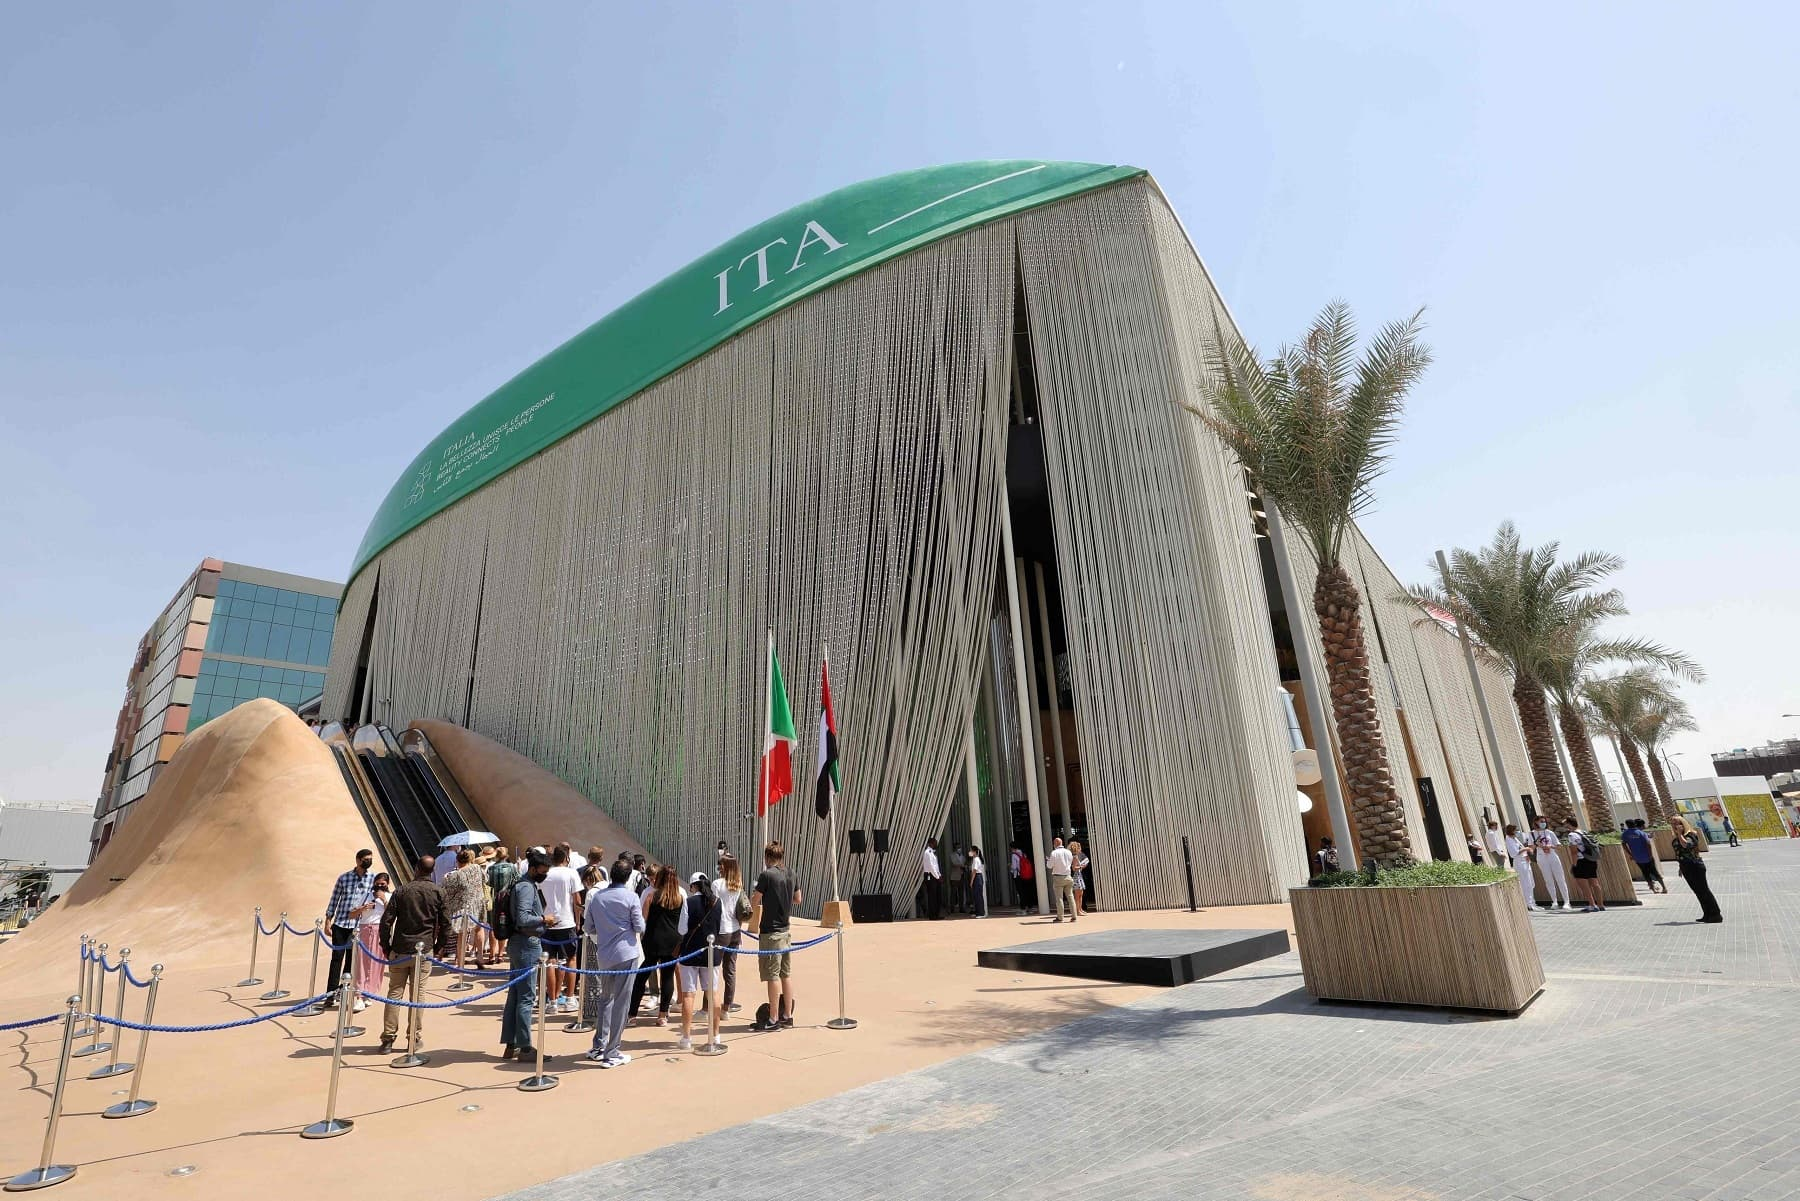 Visitors gather in front of the Italian pavilion at the Expo 2020, in the Gulf Emirate of Dubai on Friday. — AFP